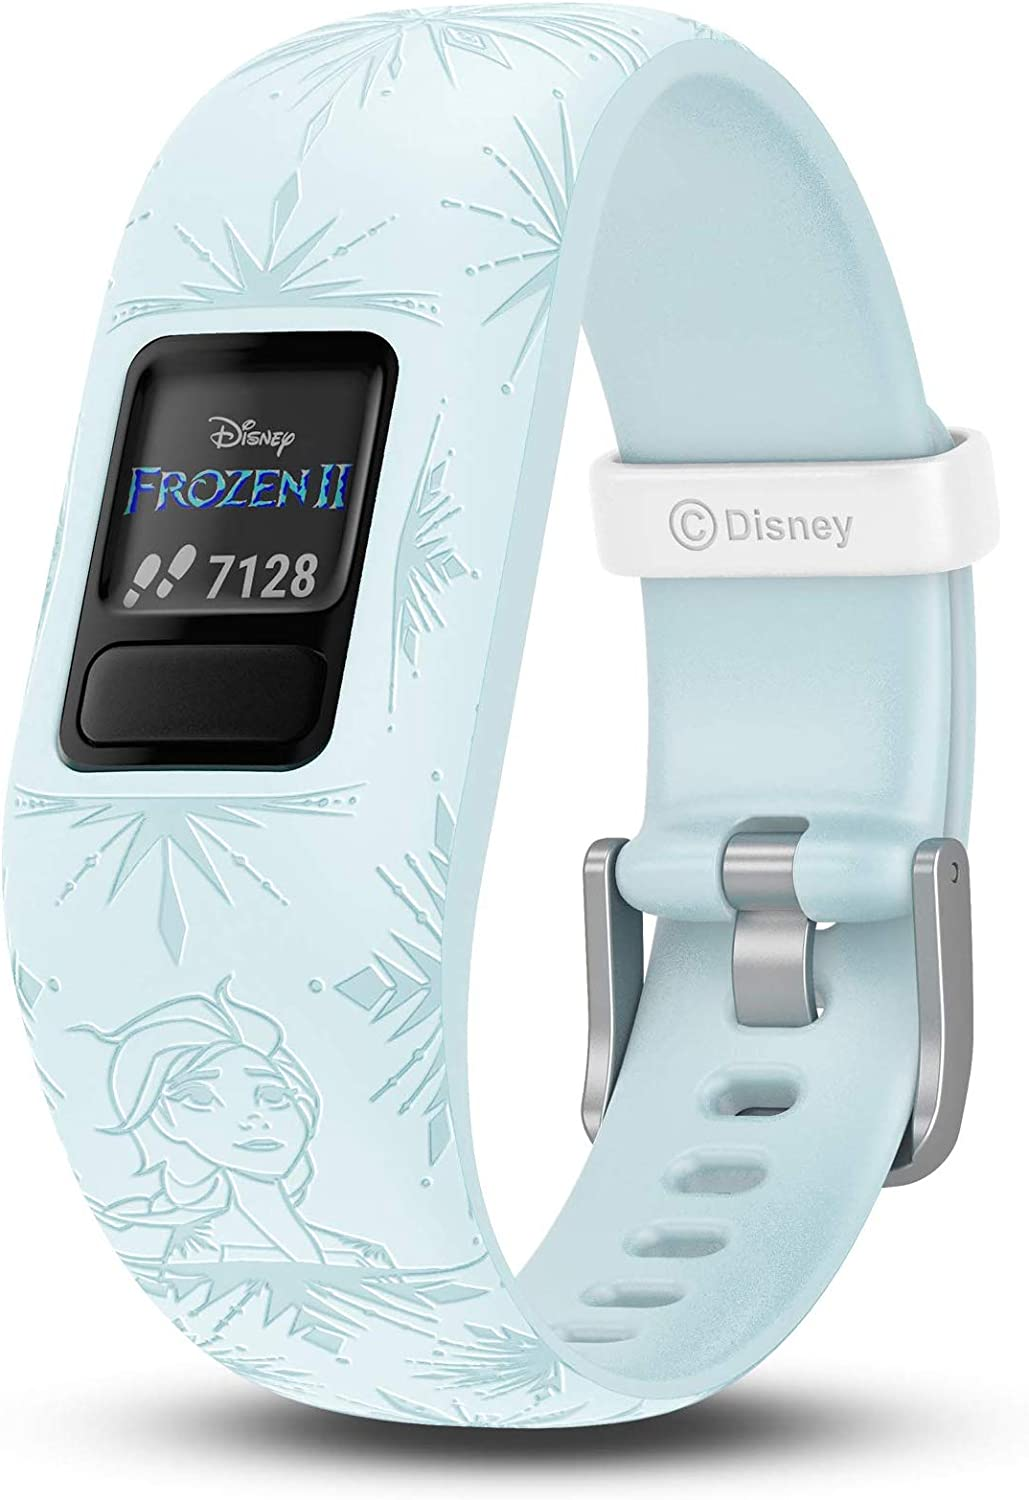 Garmin 010-01909-38 Vivofit Jr. 2, Kids Fitness/Activity Tracker, 1-Year Battery Life, Adjustable Band, Disney Frozen 2, Elsa, Light Blue